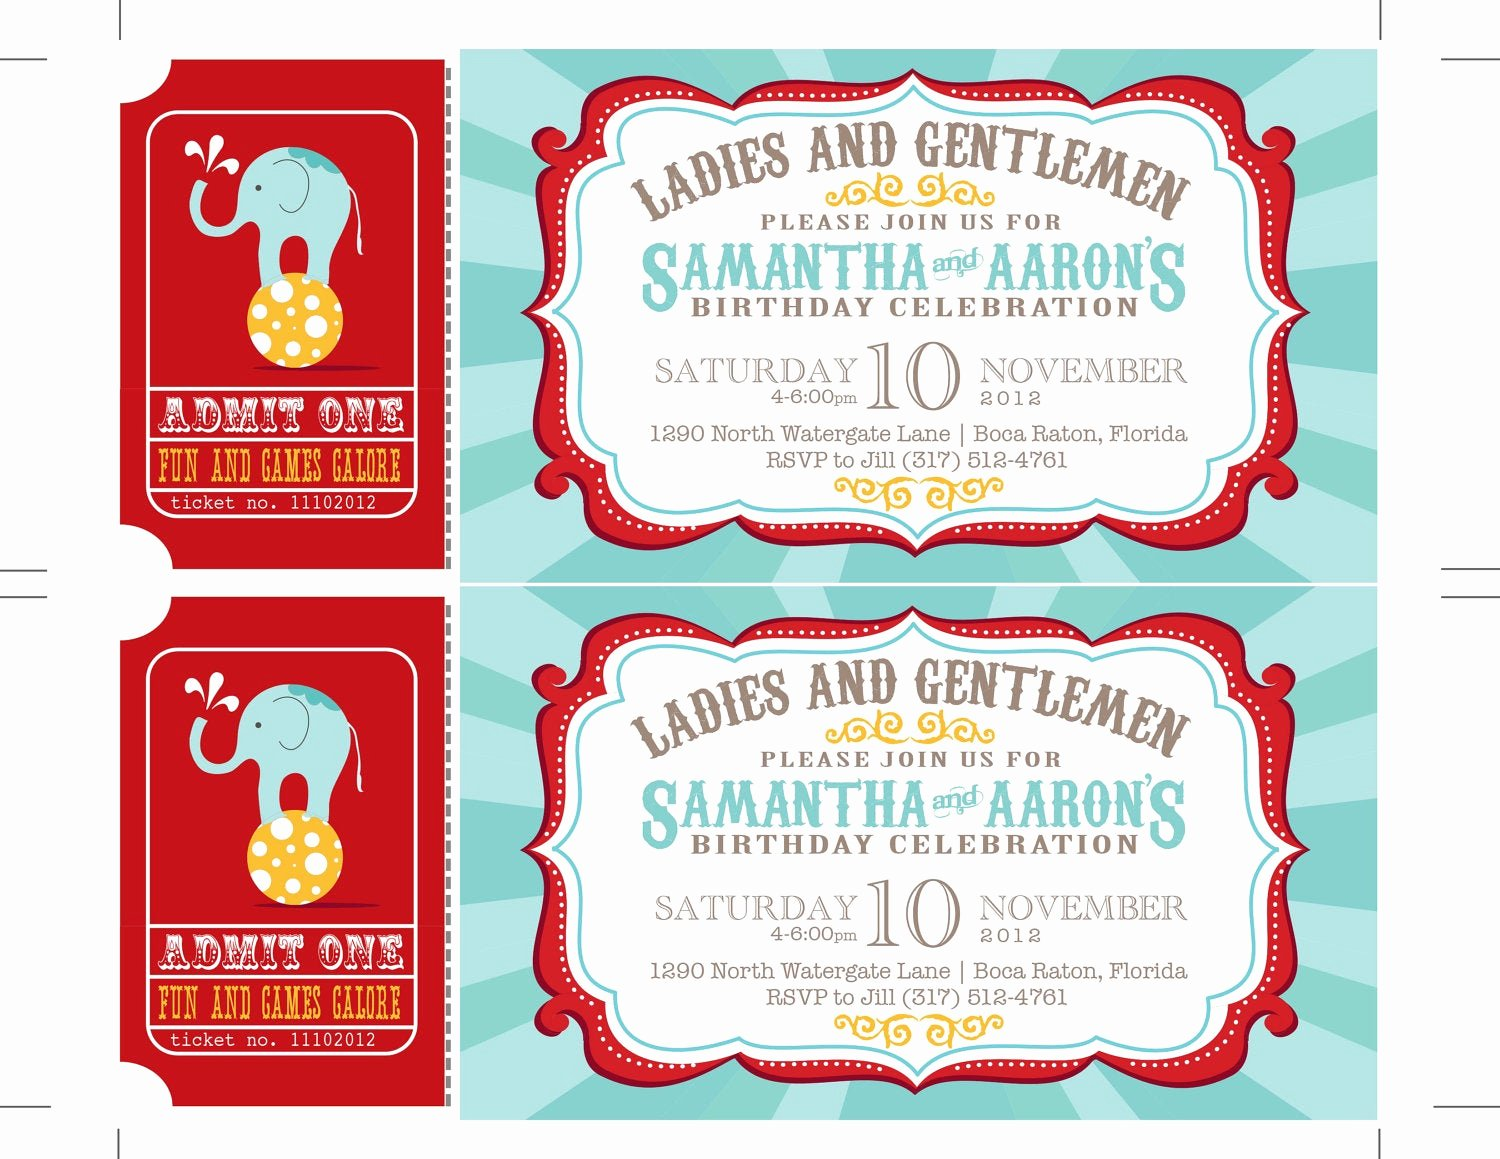 Carnival Ticket Invitation Unique Reserved Carnival Invitations Circus Invitations Ticket